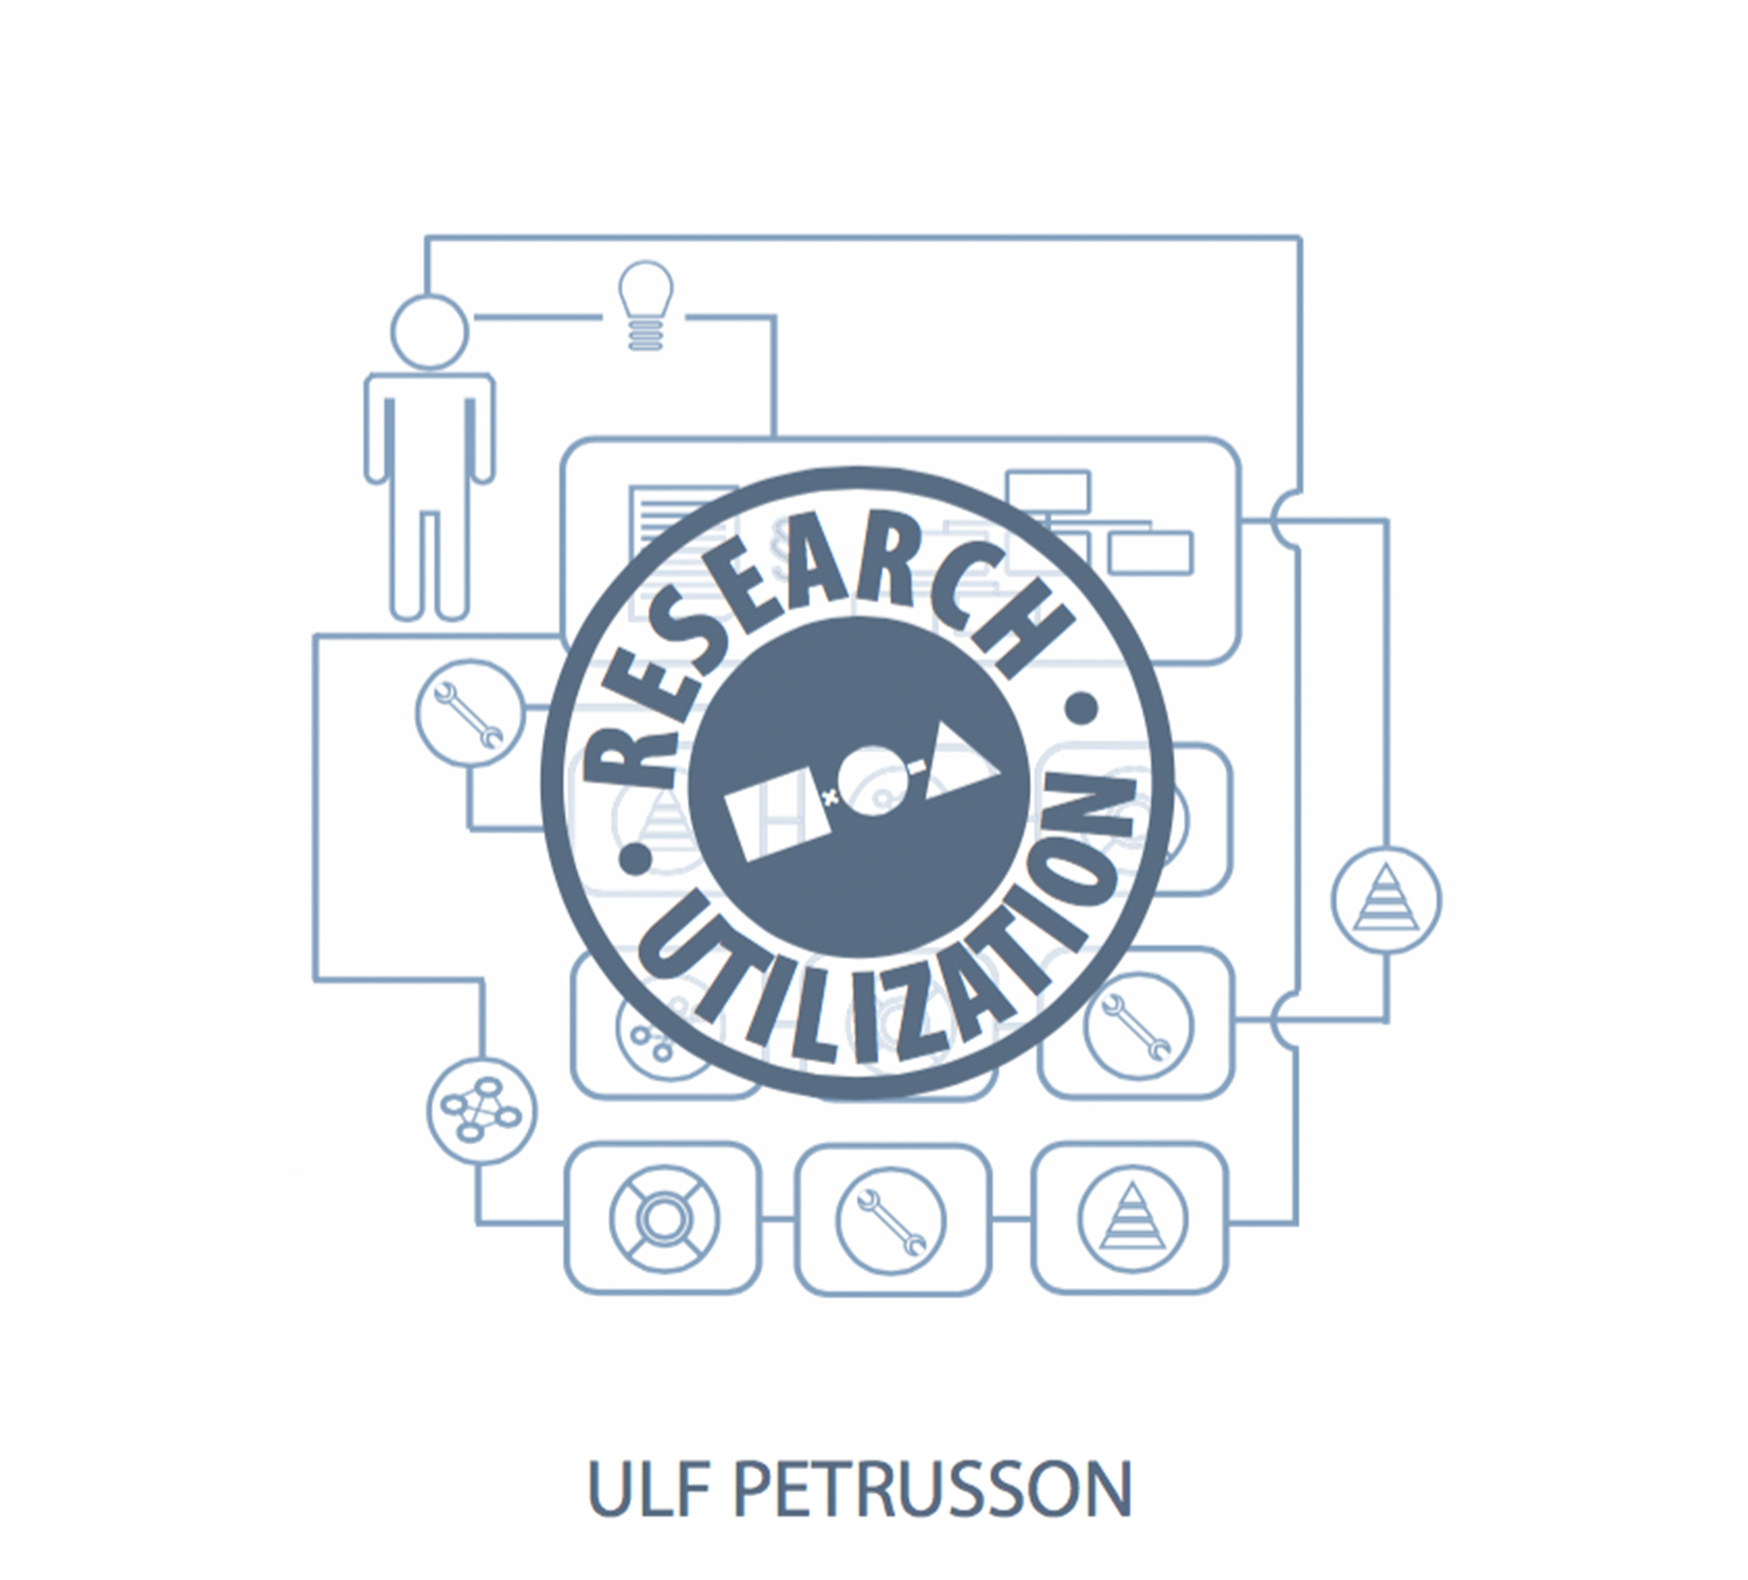 Ulf Petrusson's Latest Book Research And Utilization